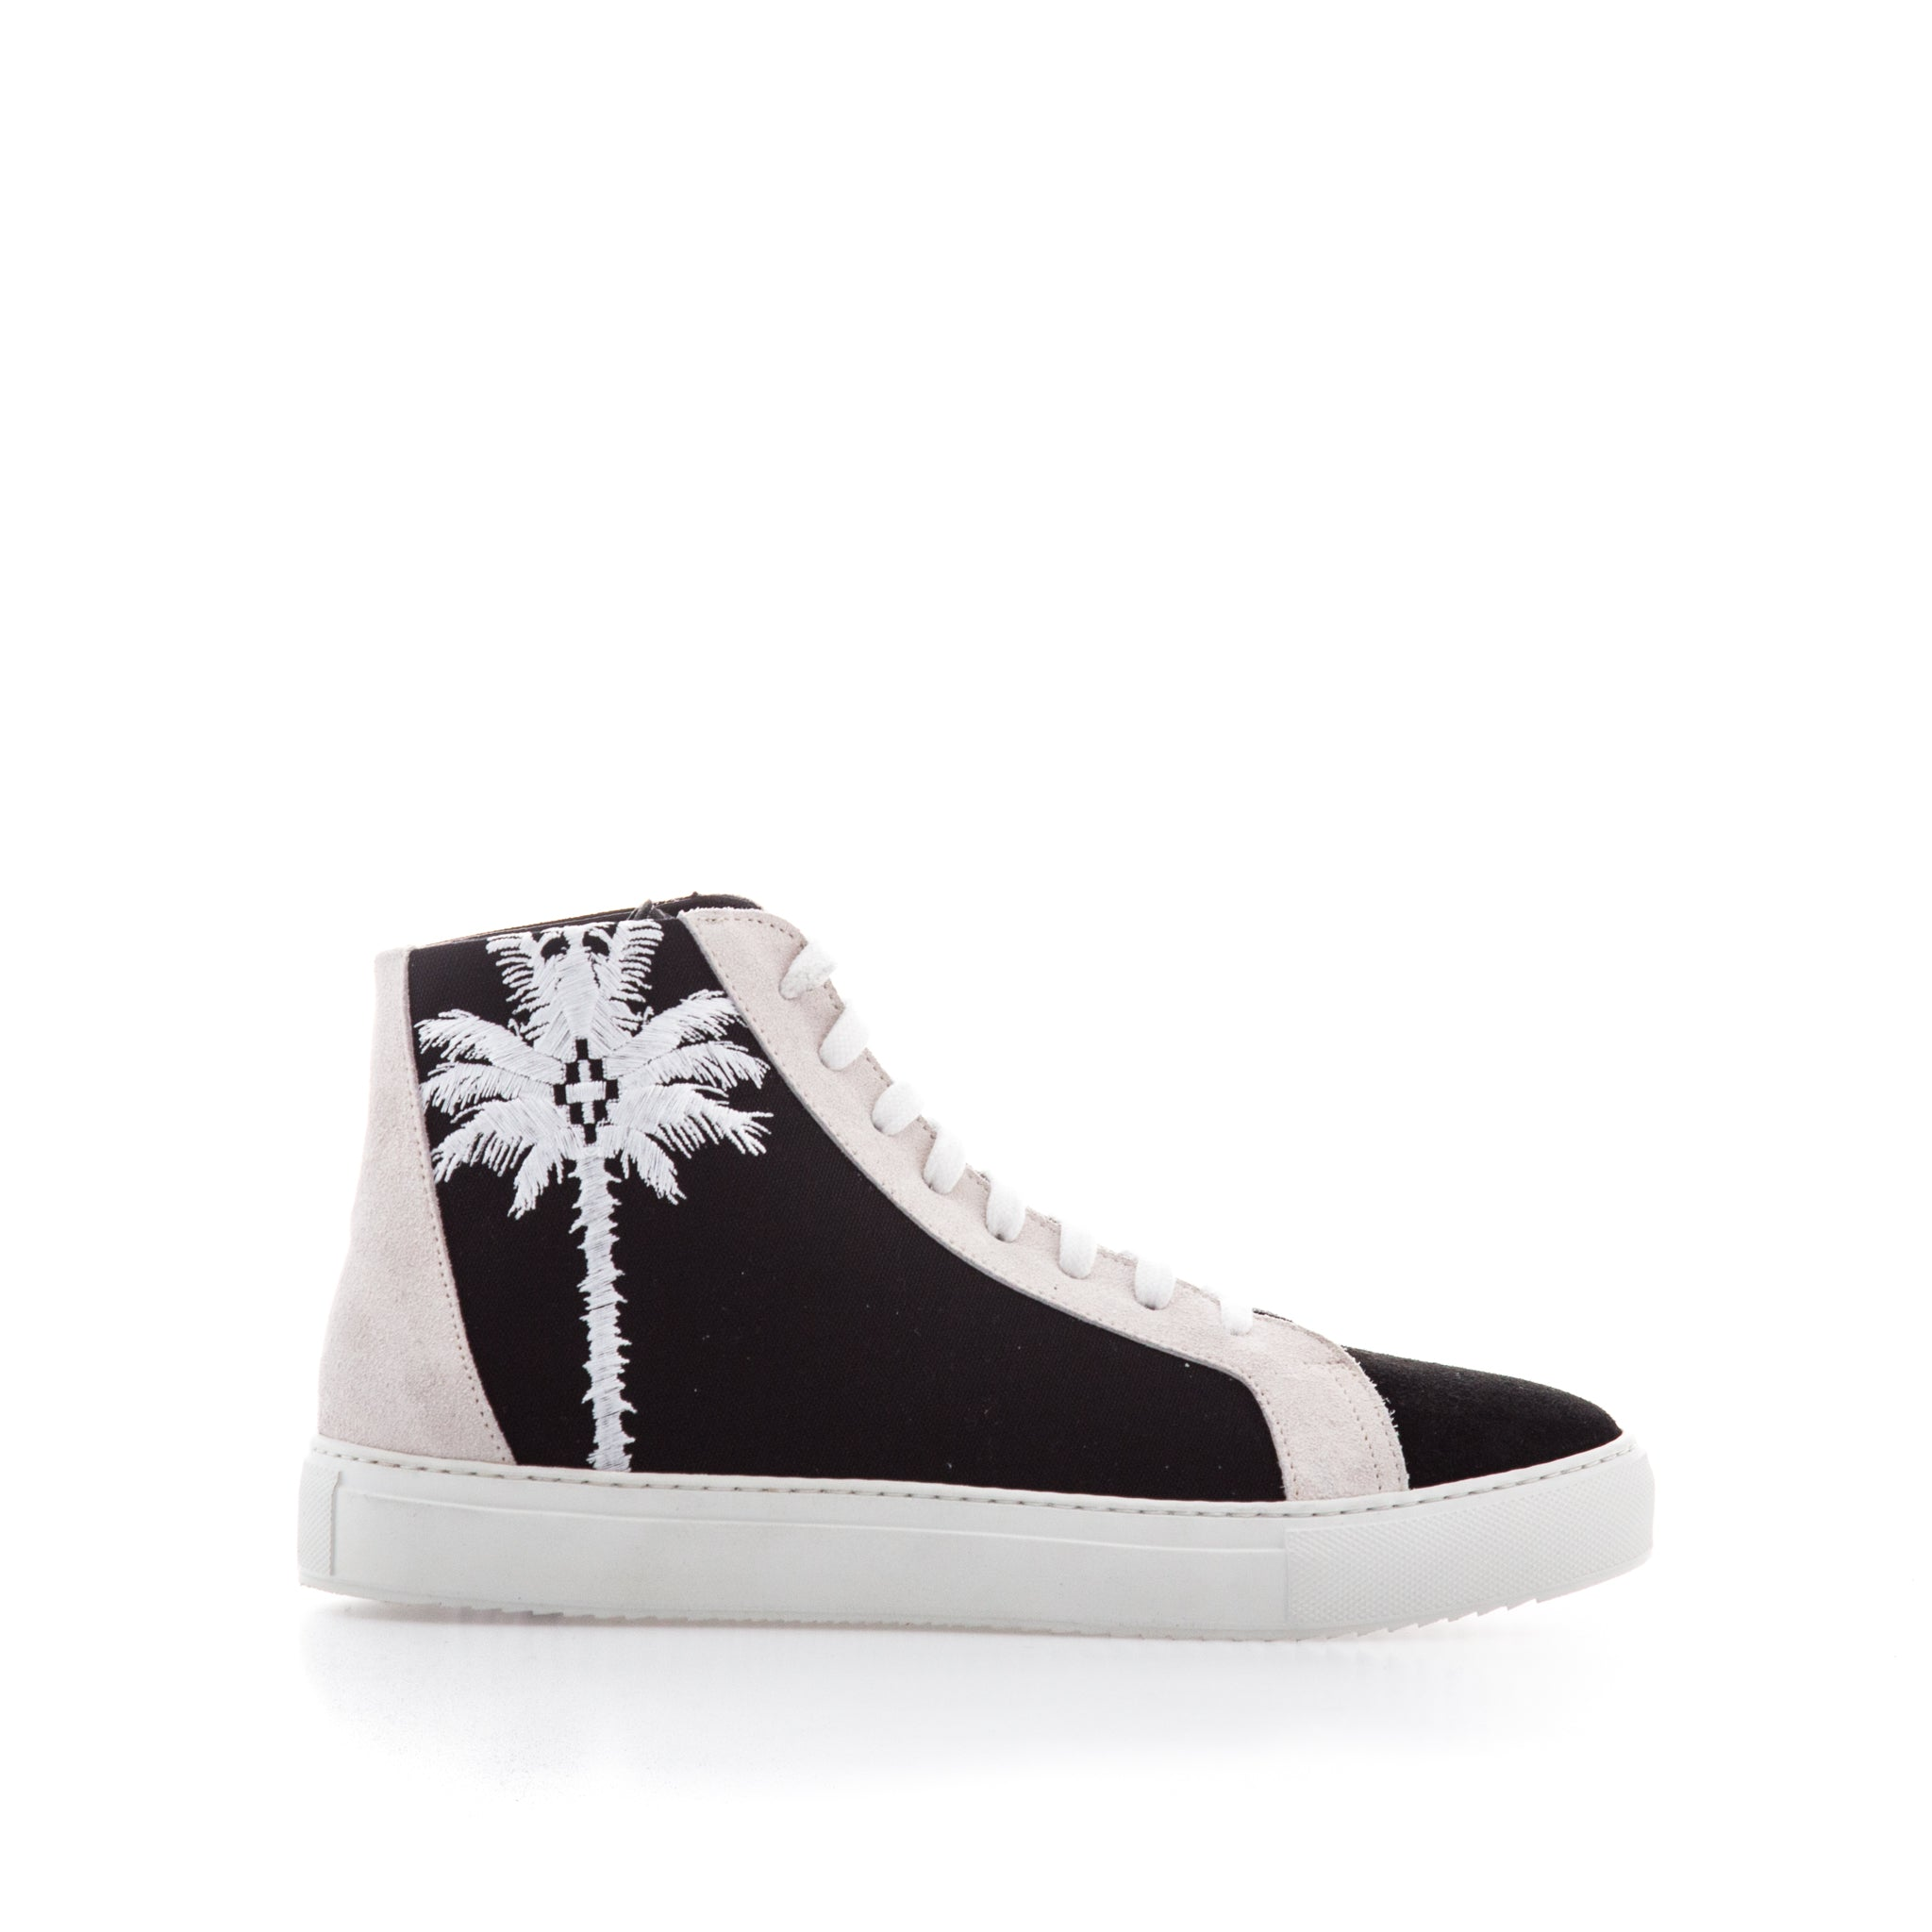 High Top Sneakers-MARCELO BURLON COUNTY OF MILAN-SHOPATVOI.COM - Luxury Fashion Designer